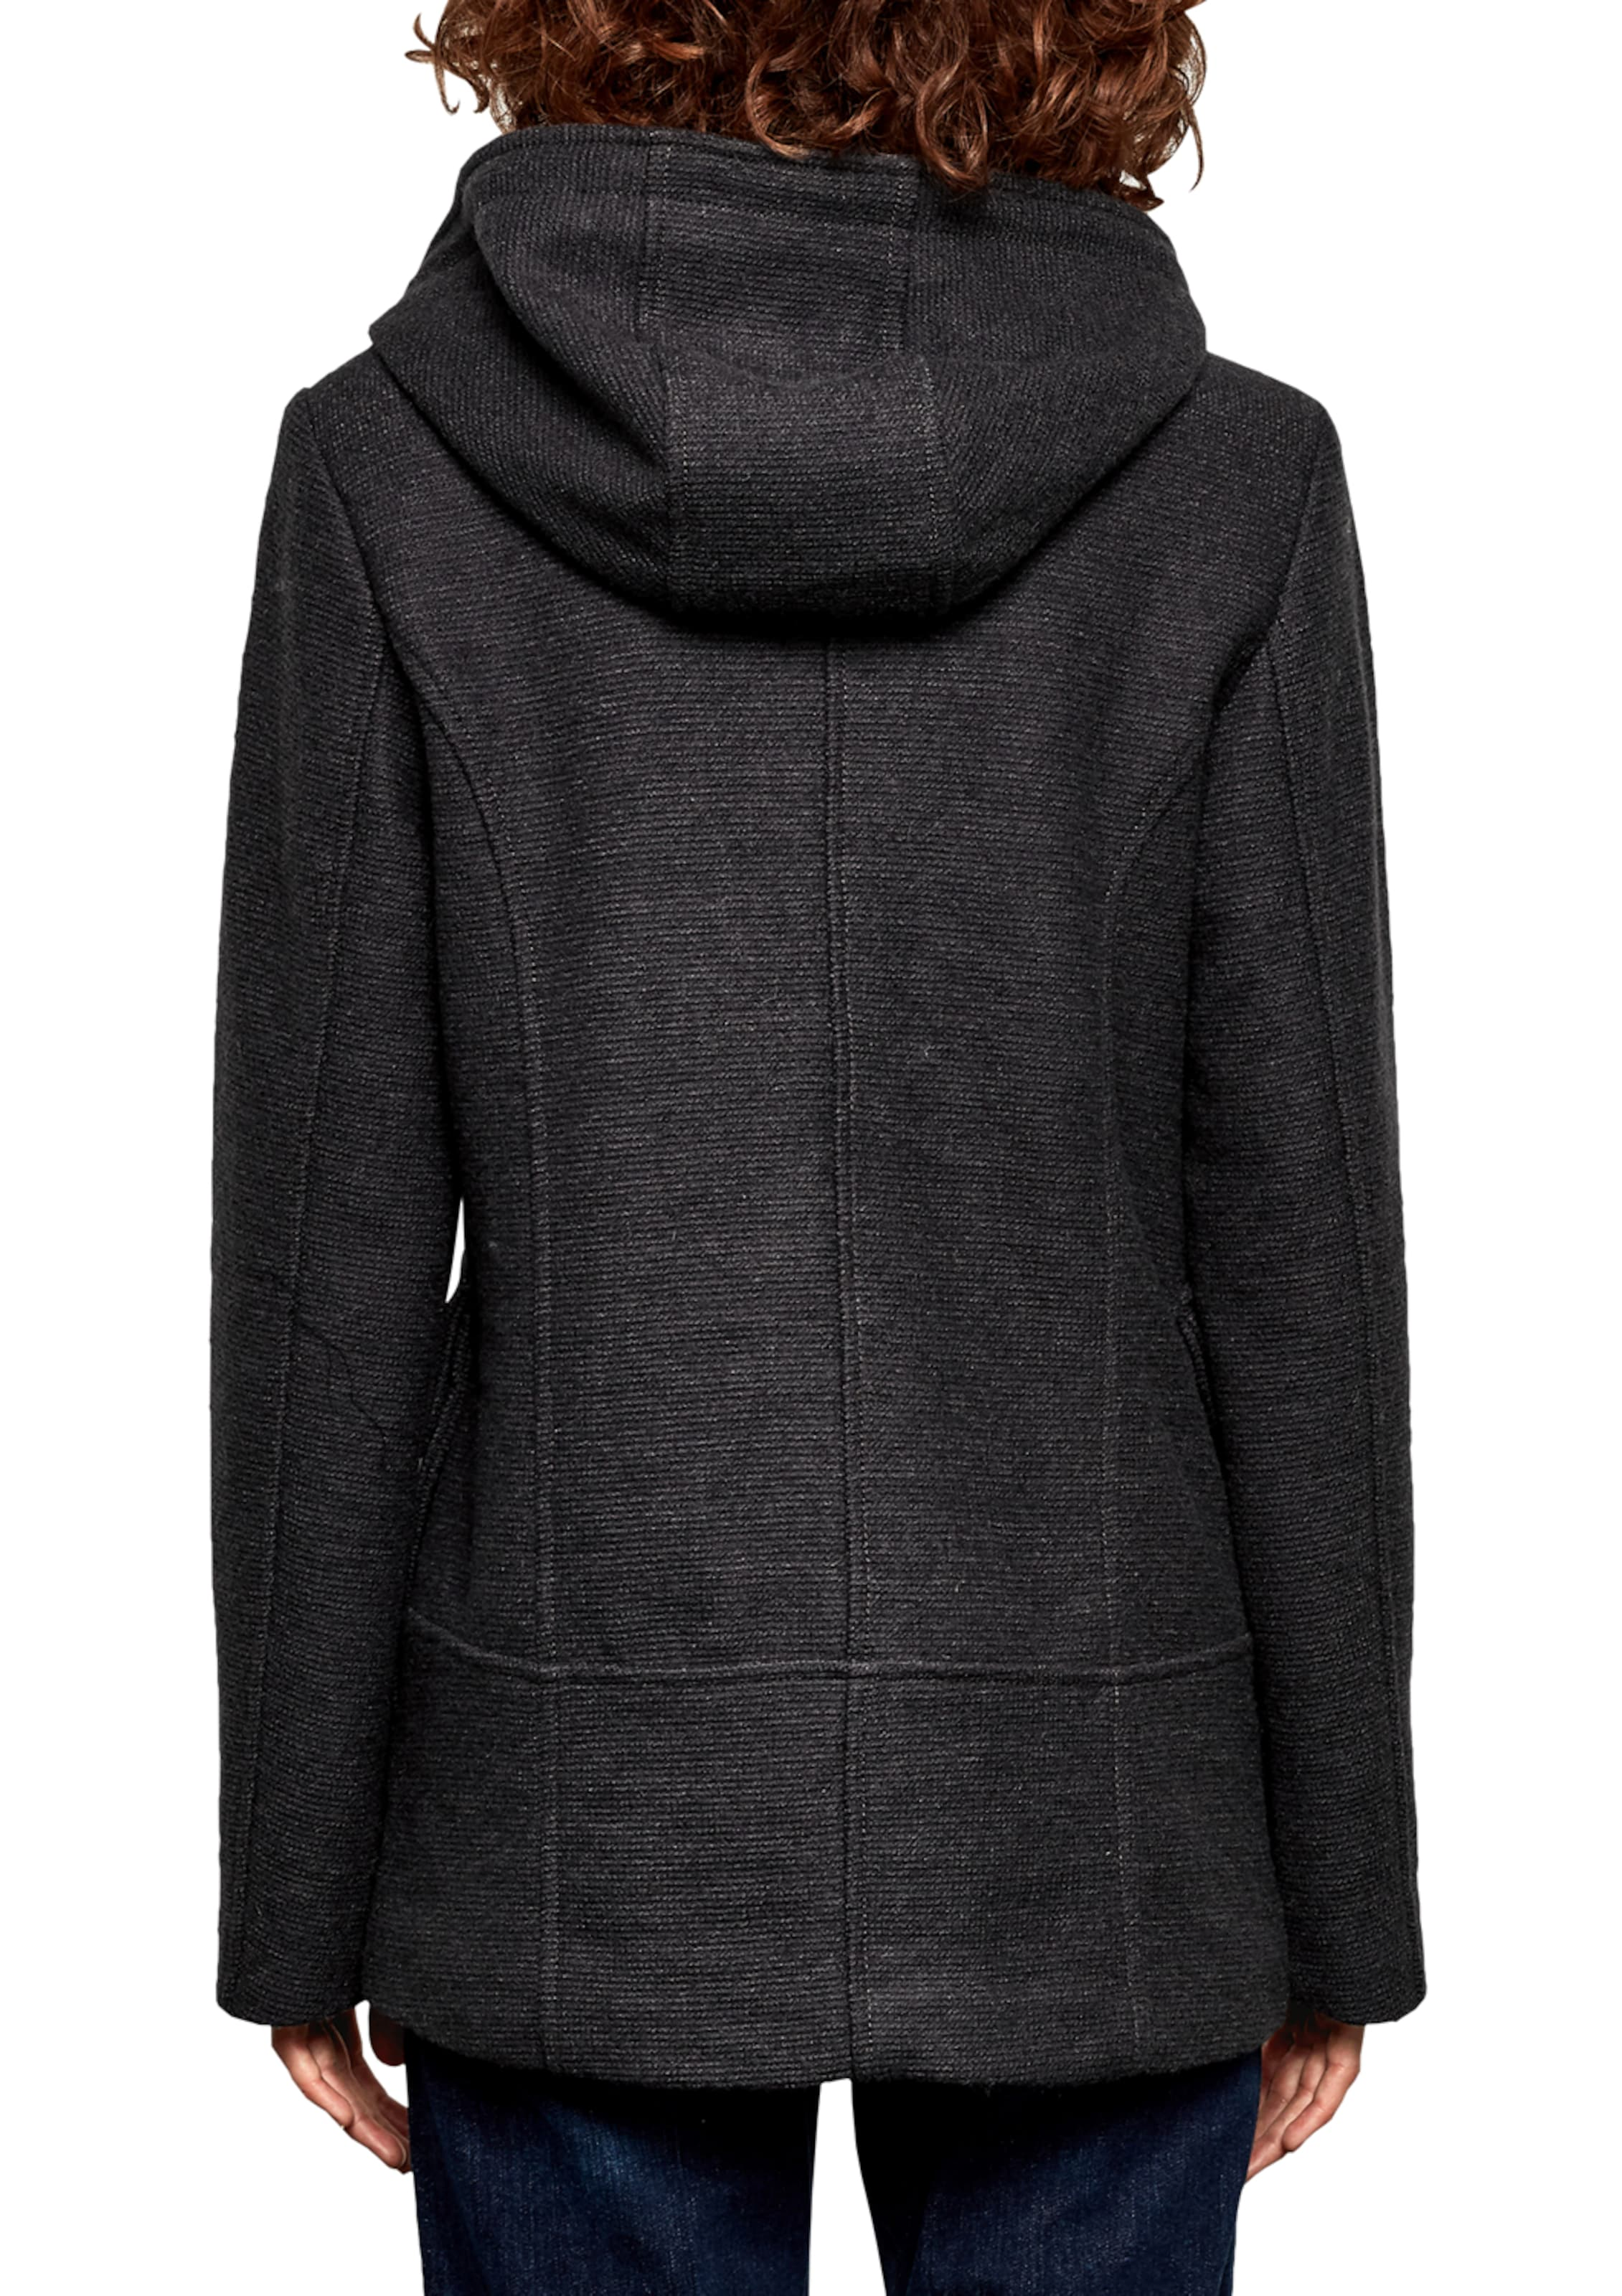 Q By Designed s In Parka Schwarz TlJ1FcK